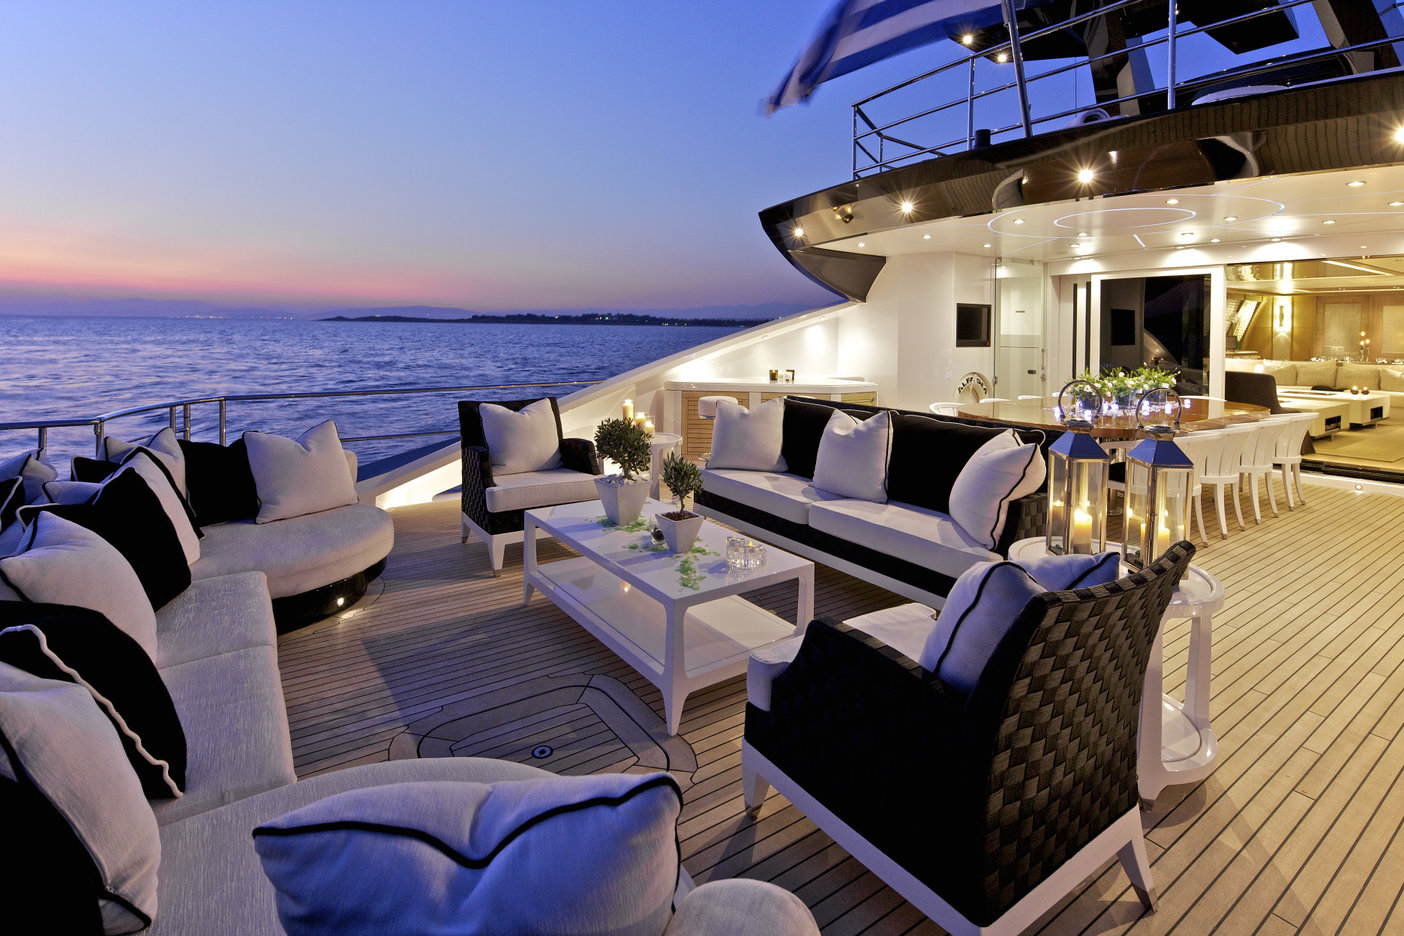 Copy of Aft deck sport yacht 135